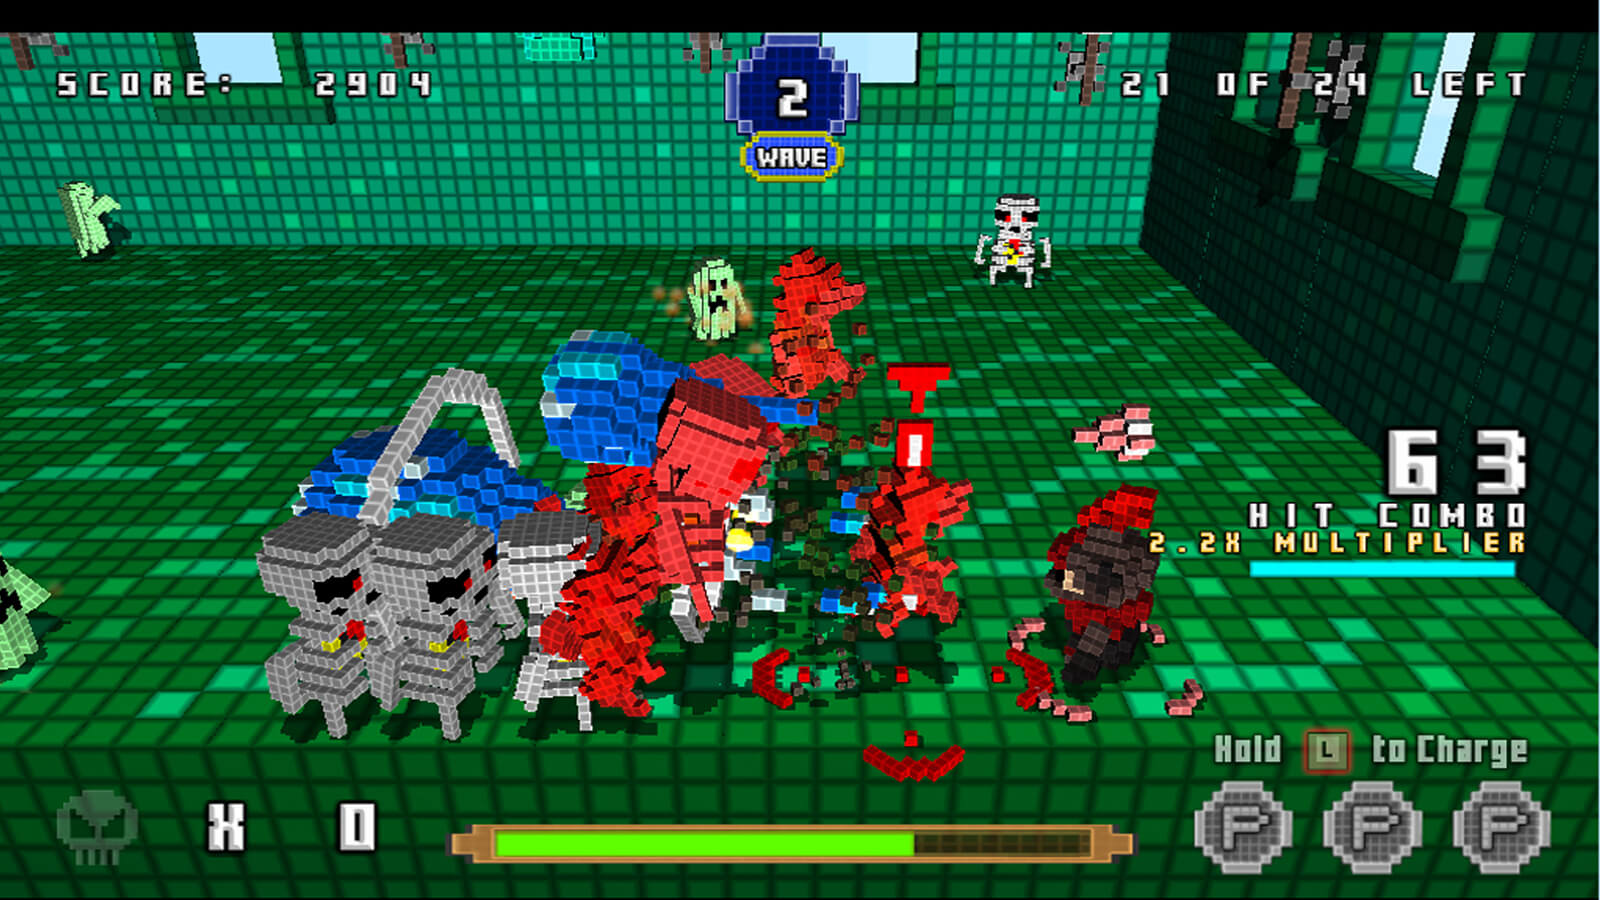 A crowd of multicolored, voxel-based enemies descend on the player on a green-background map